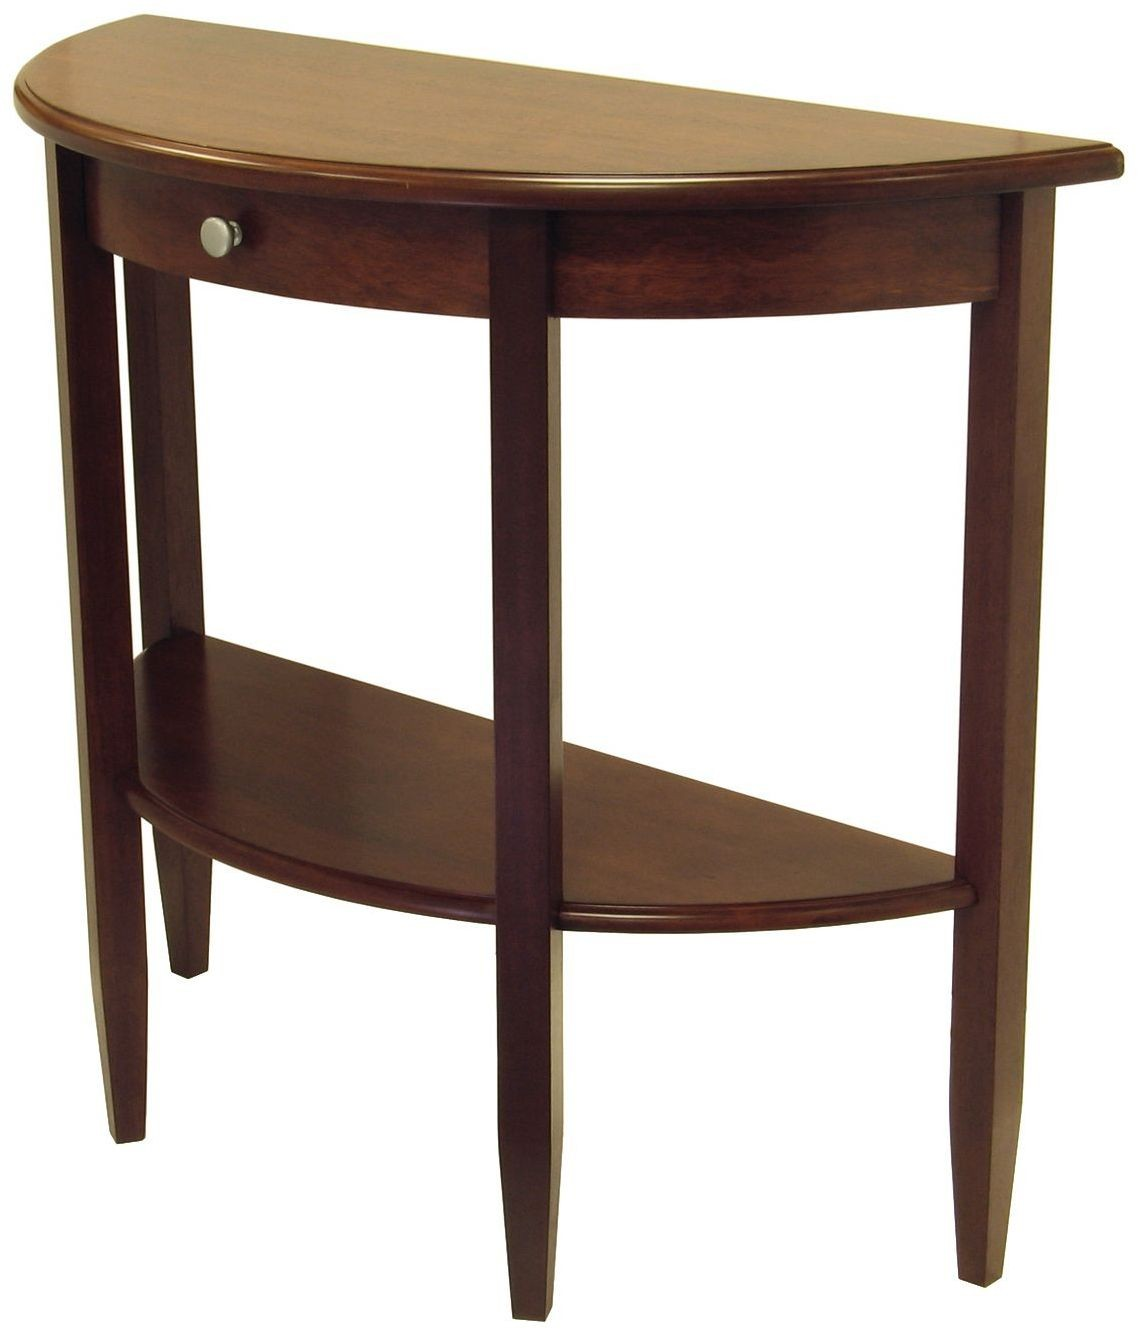 Concord Half Moon Drawer Hall Console Table 94039 Winsome